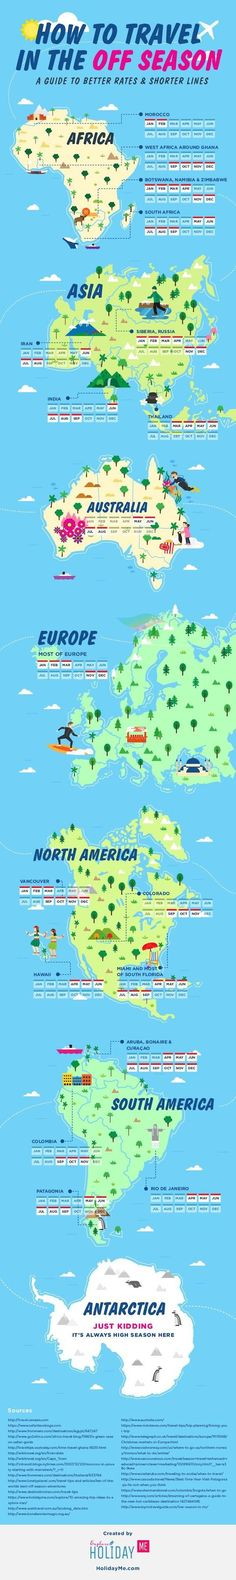 Infographic: A Guide To Off Season Travel In Countries Around The World #Travel #Exotic #ShermanFinancialGroup